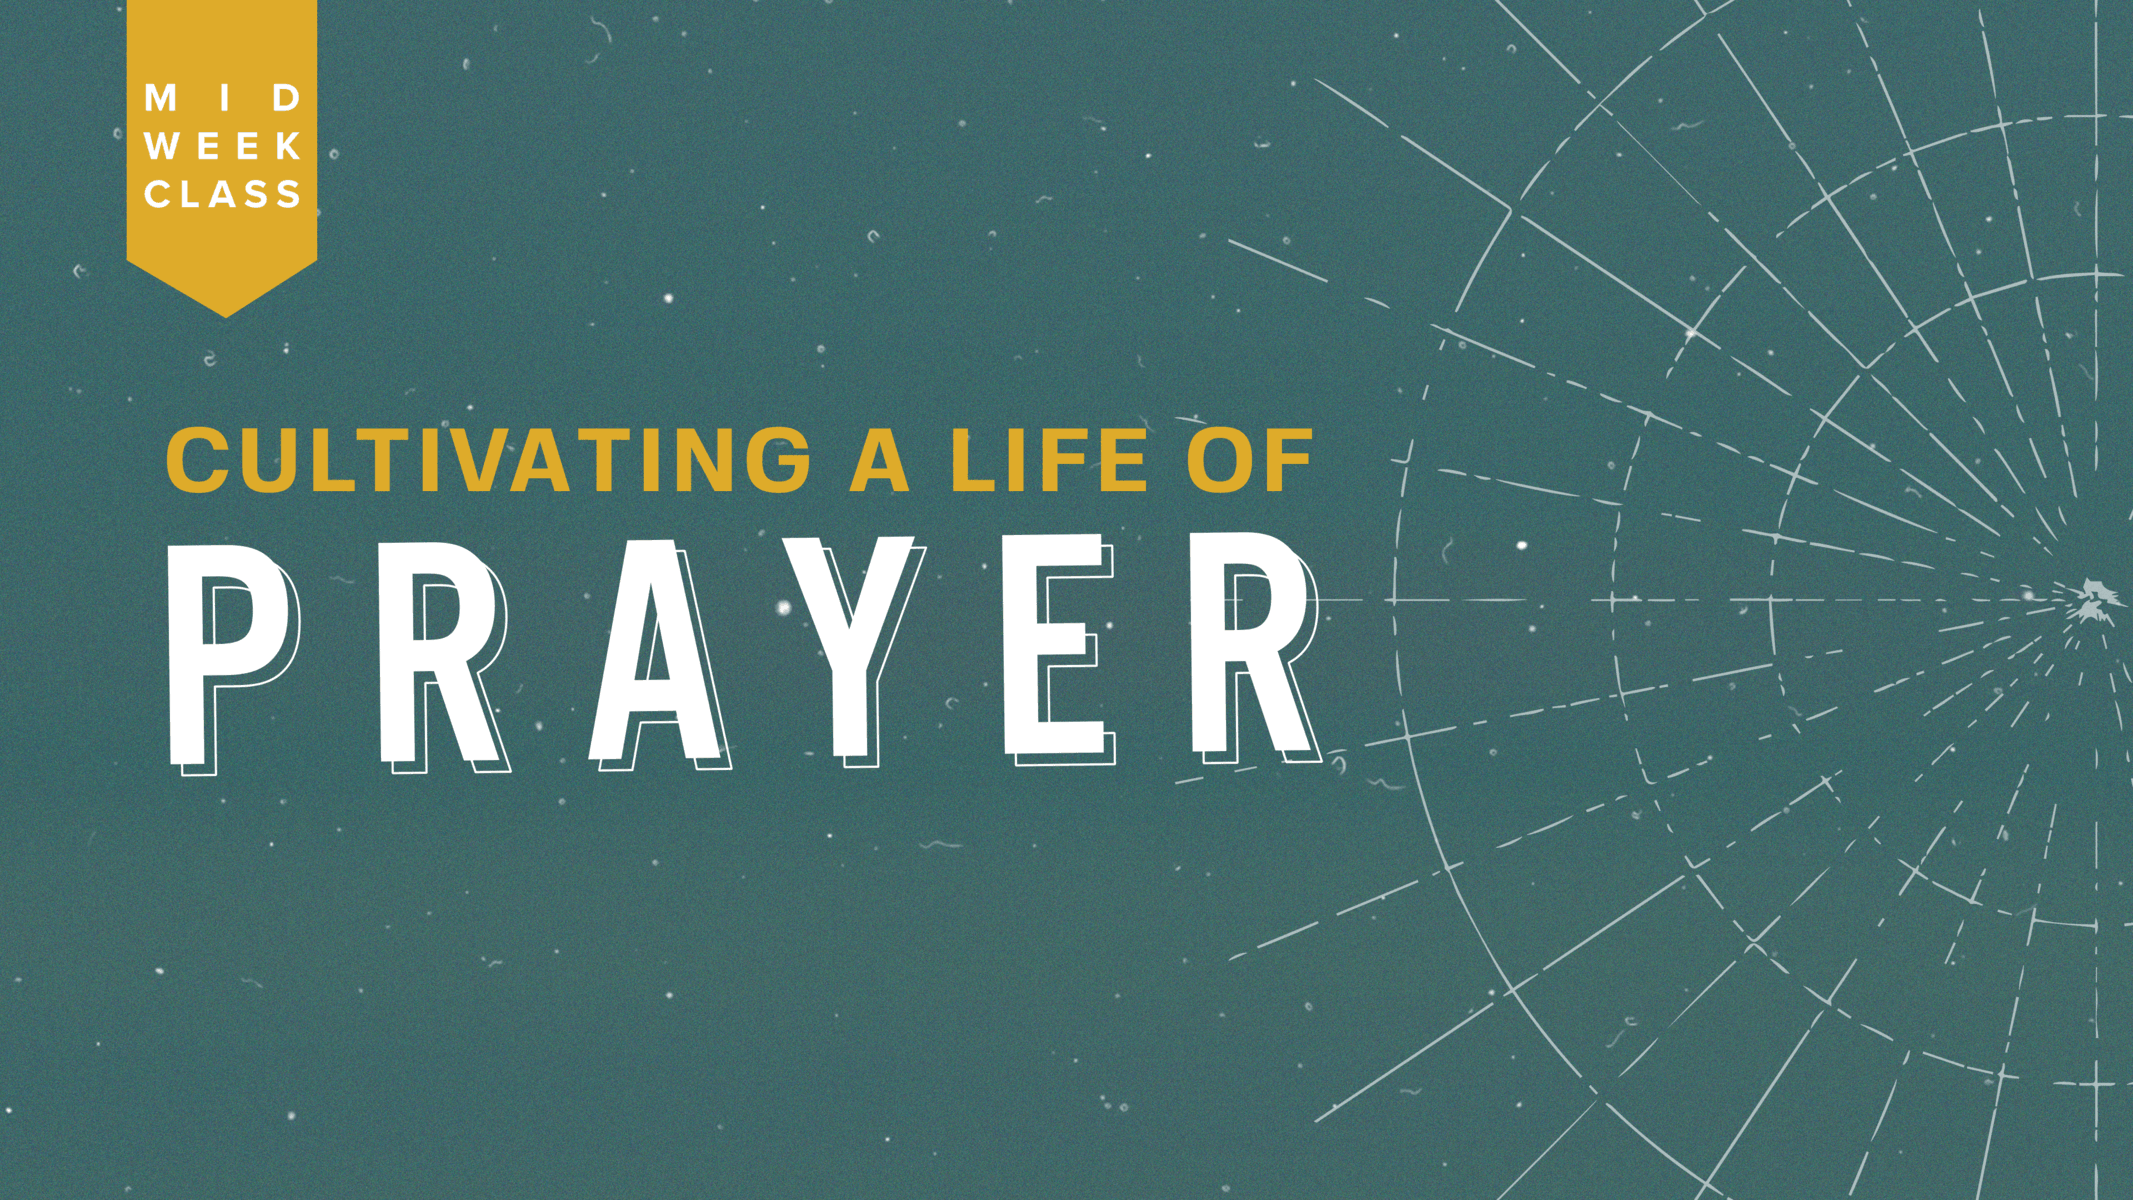 cultivating-a-life-of-prayer